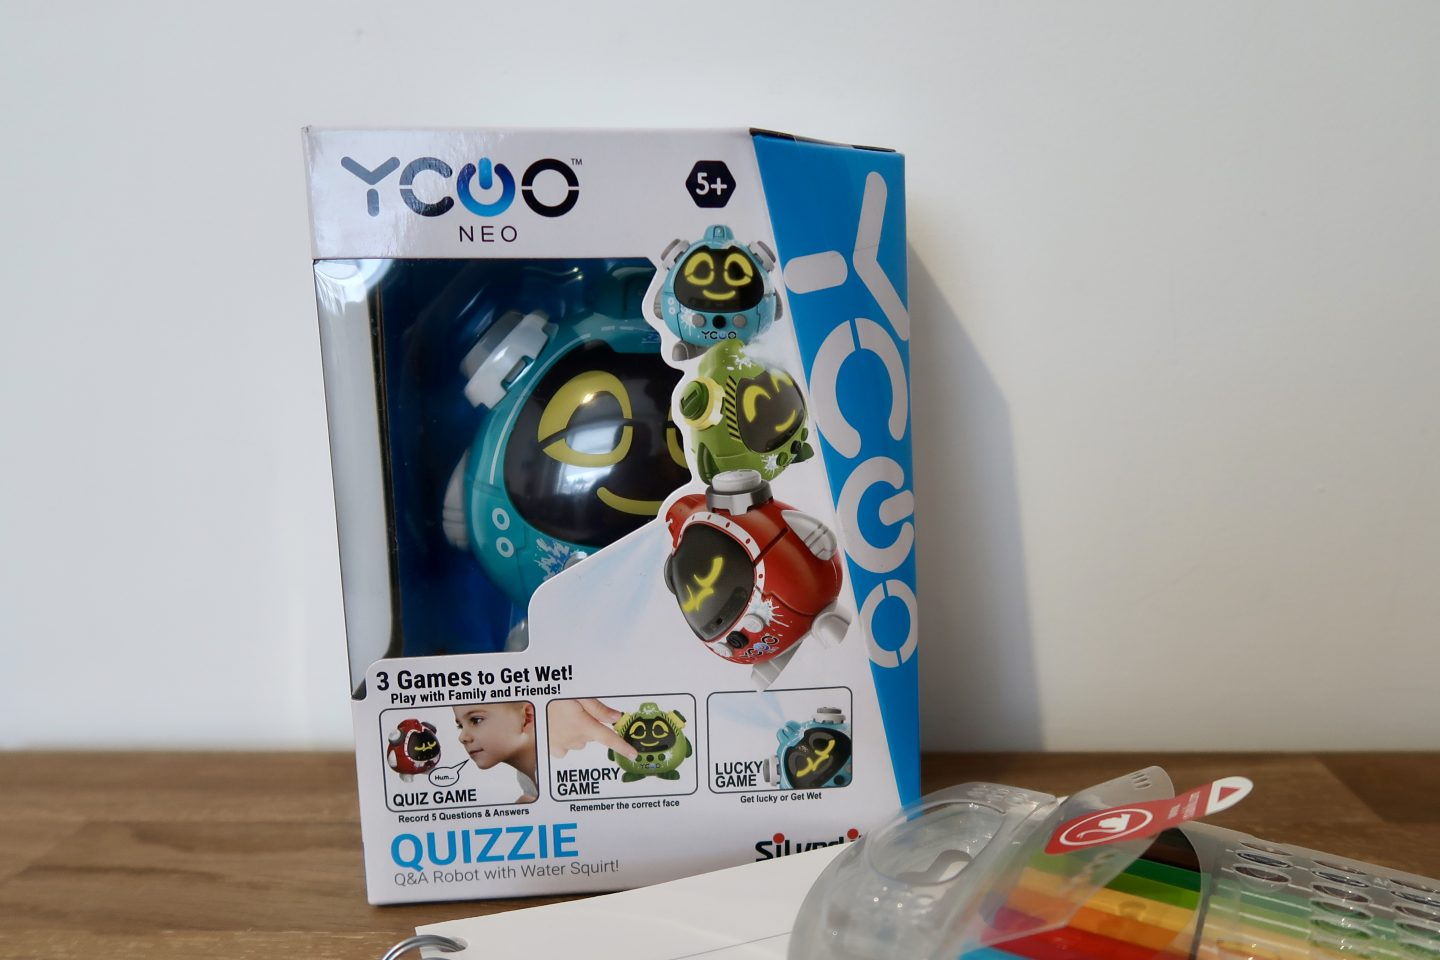 A Quizzie children's toy in it's box on a table with a notebook and pens